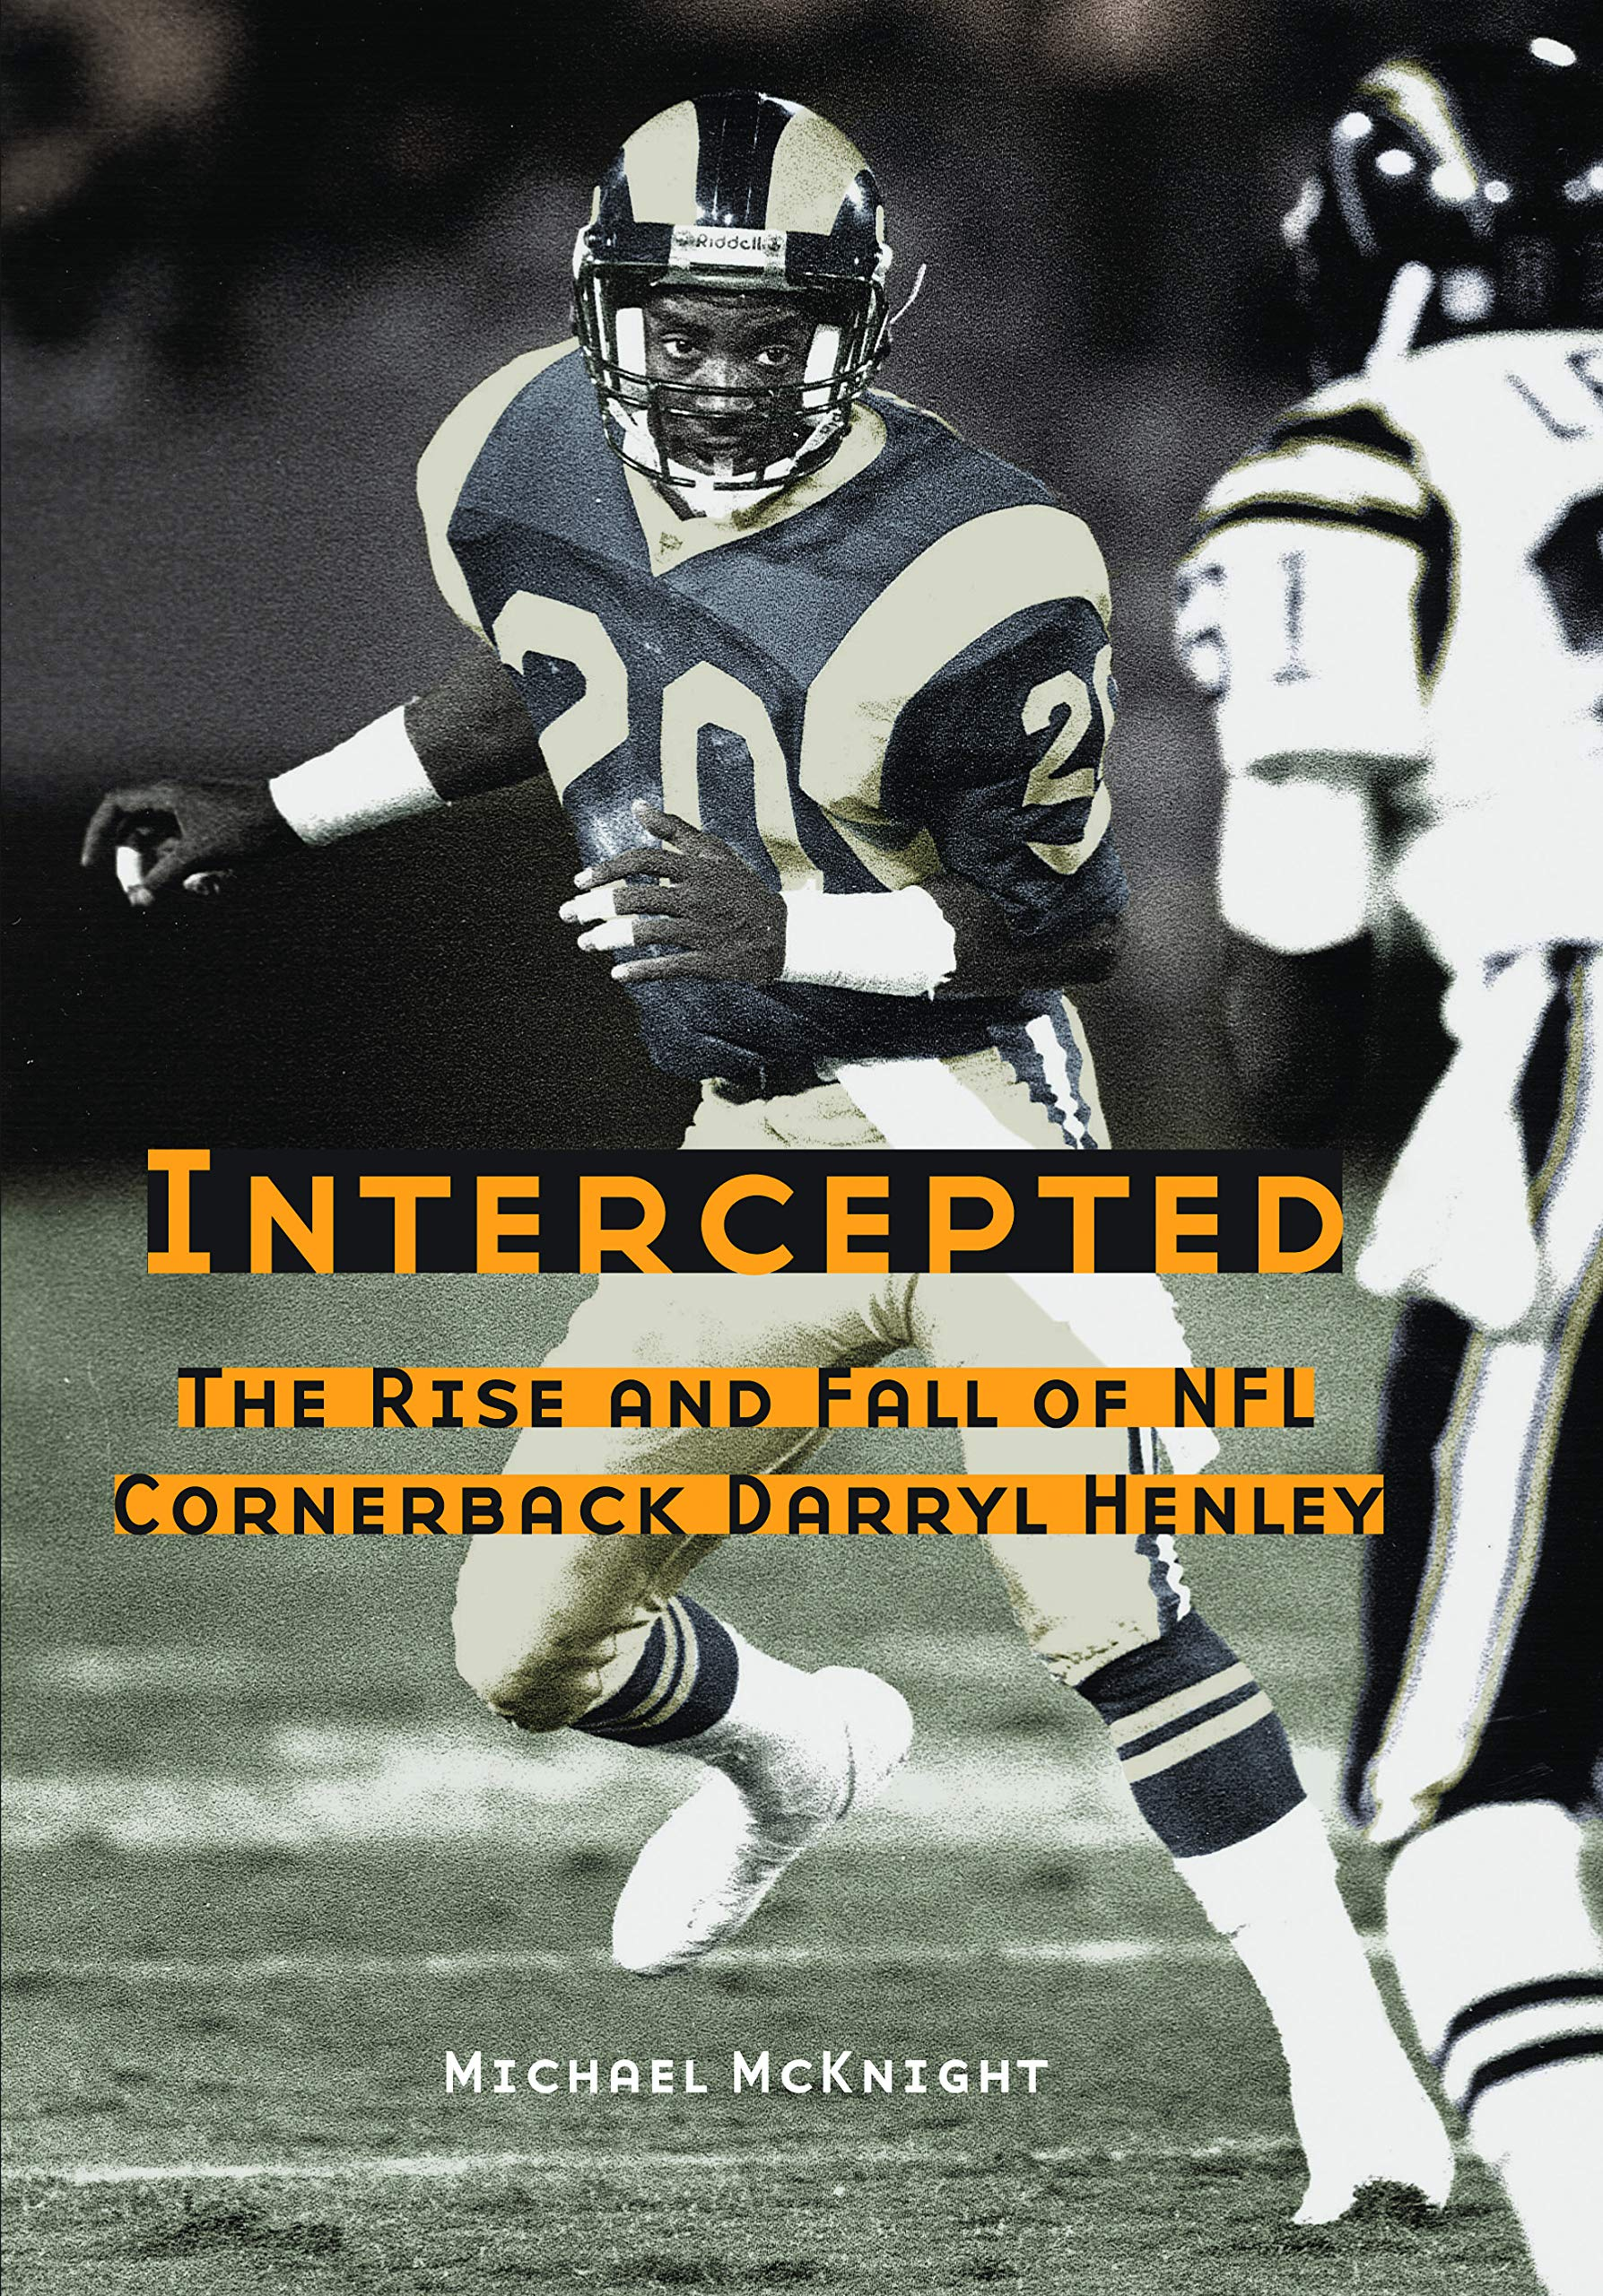 Intercepted: The Rise And Fall Of NFL Cornerback Darryl Henley